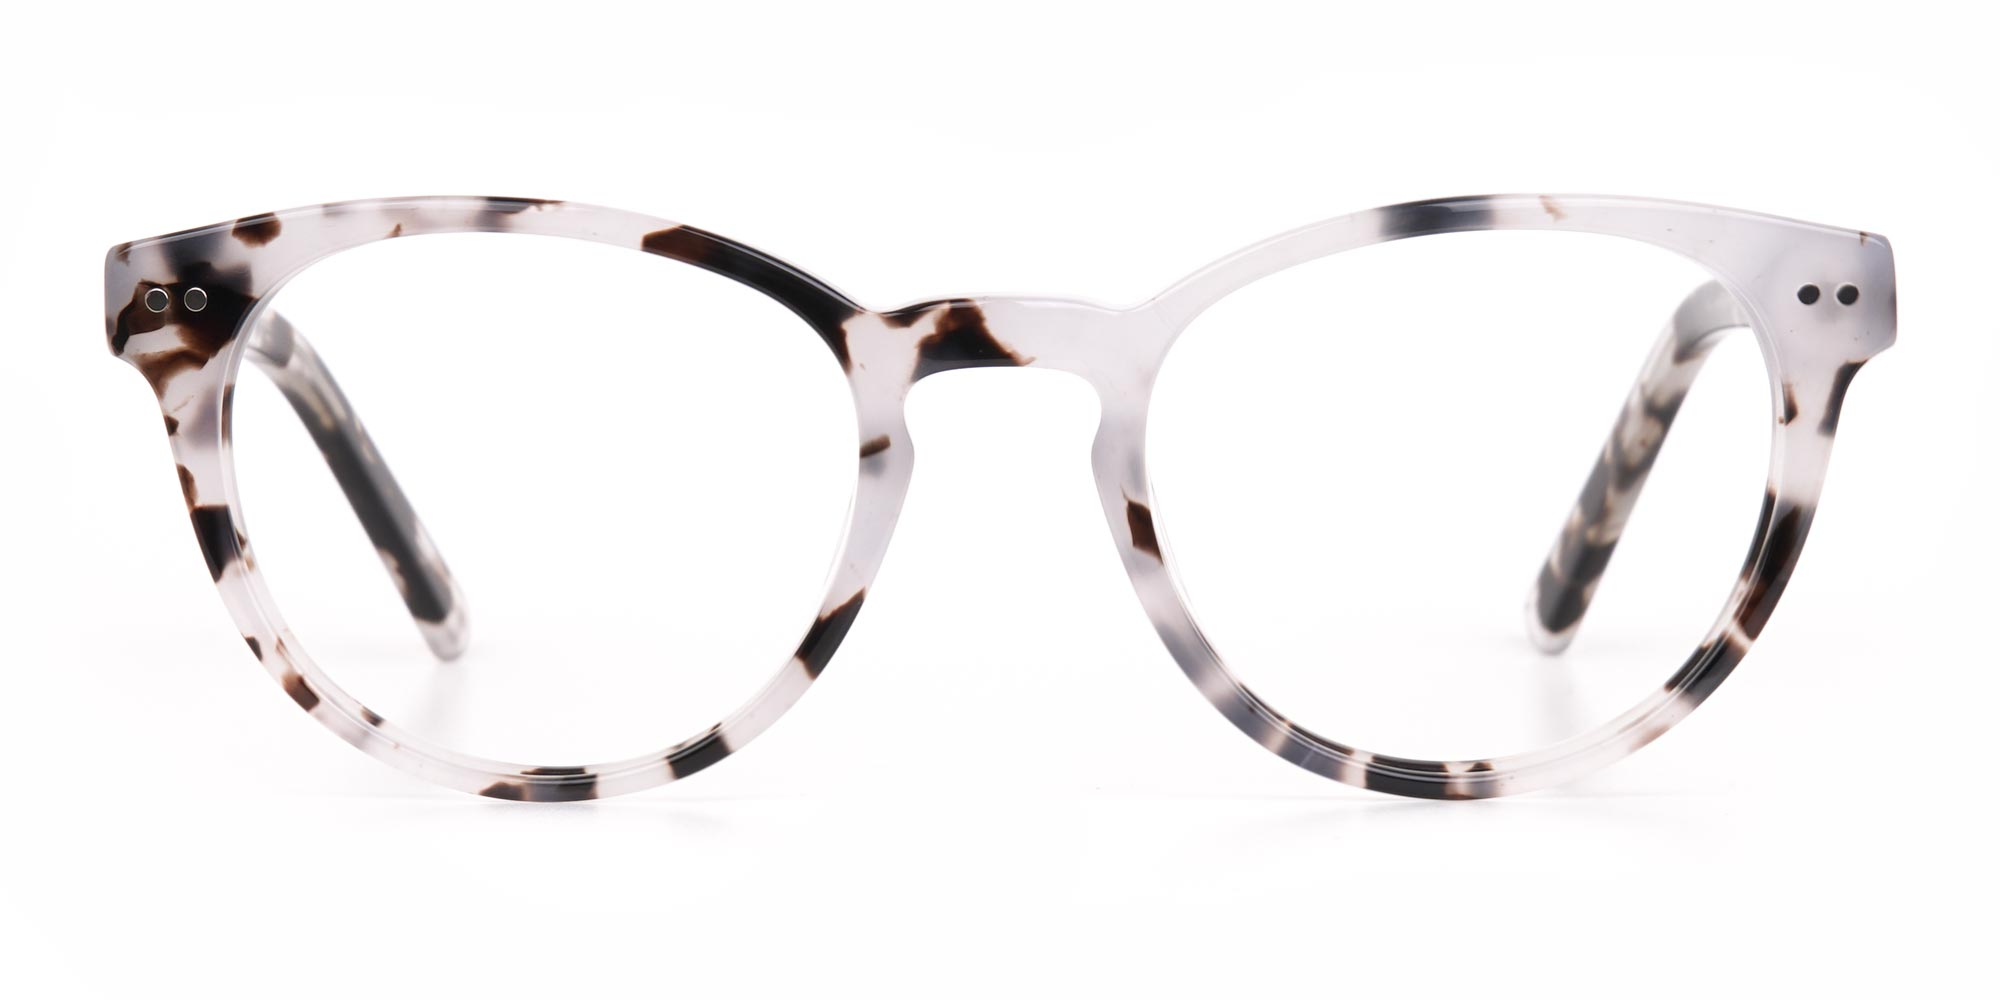 Marble Grey Glasses in Round for Triangle face shape